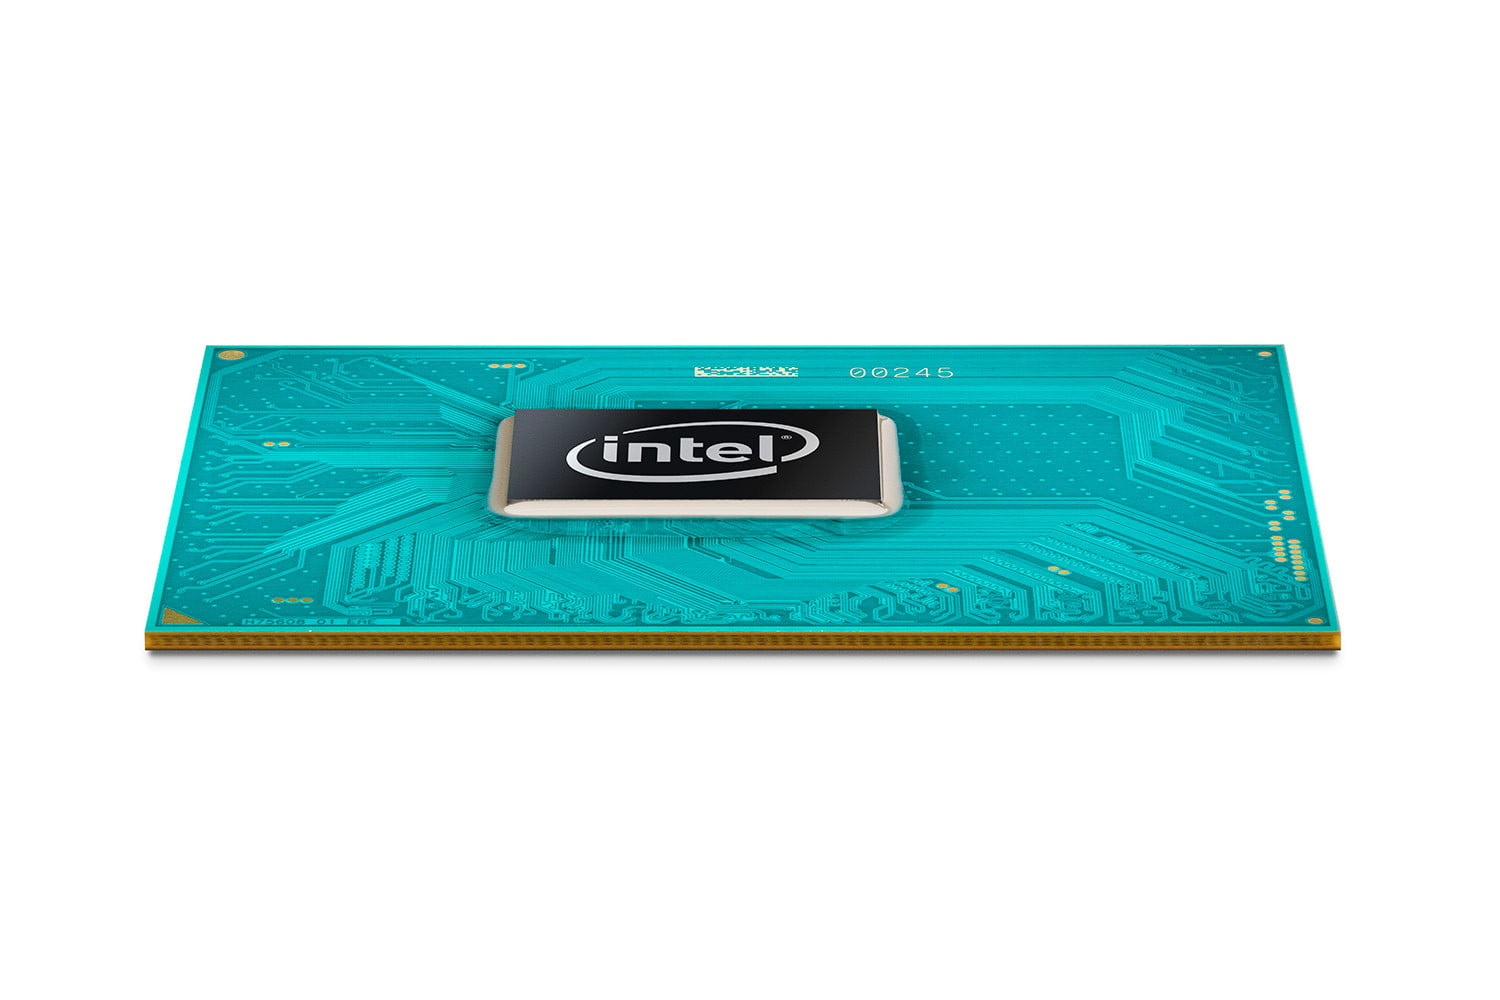 7th generation intel core ces 2017 kby lake h front low persp center 05 whitebkg